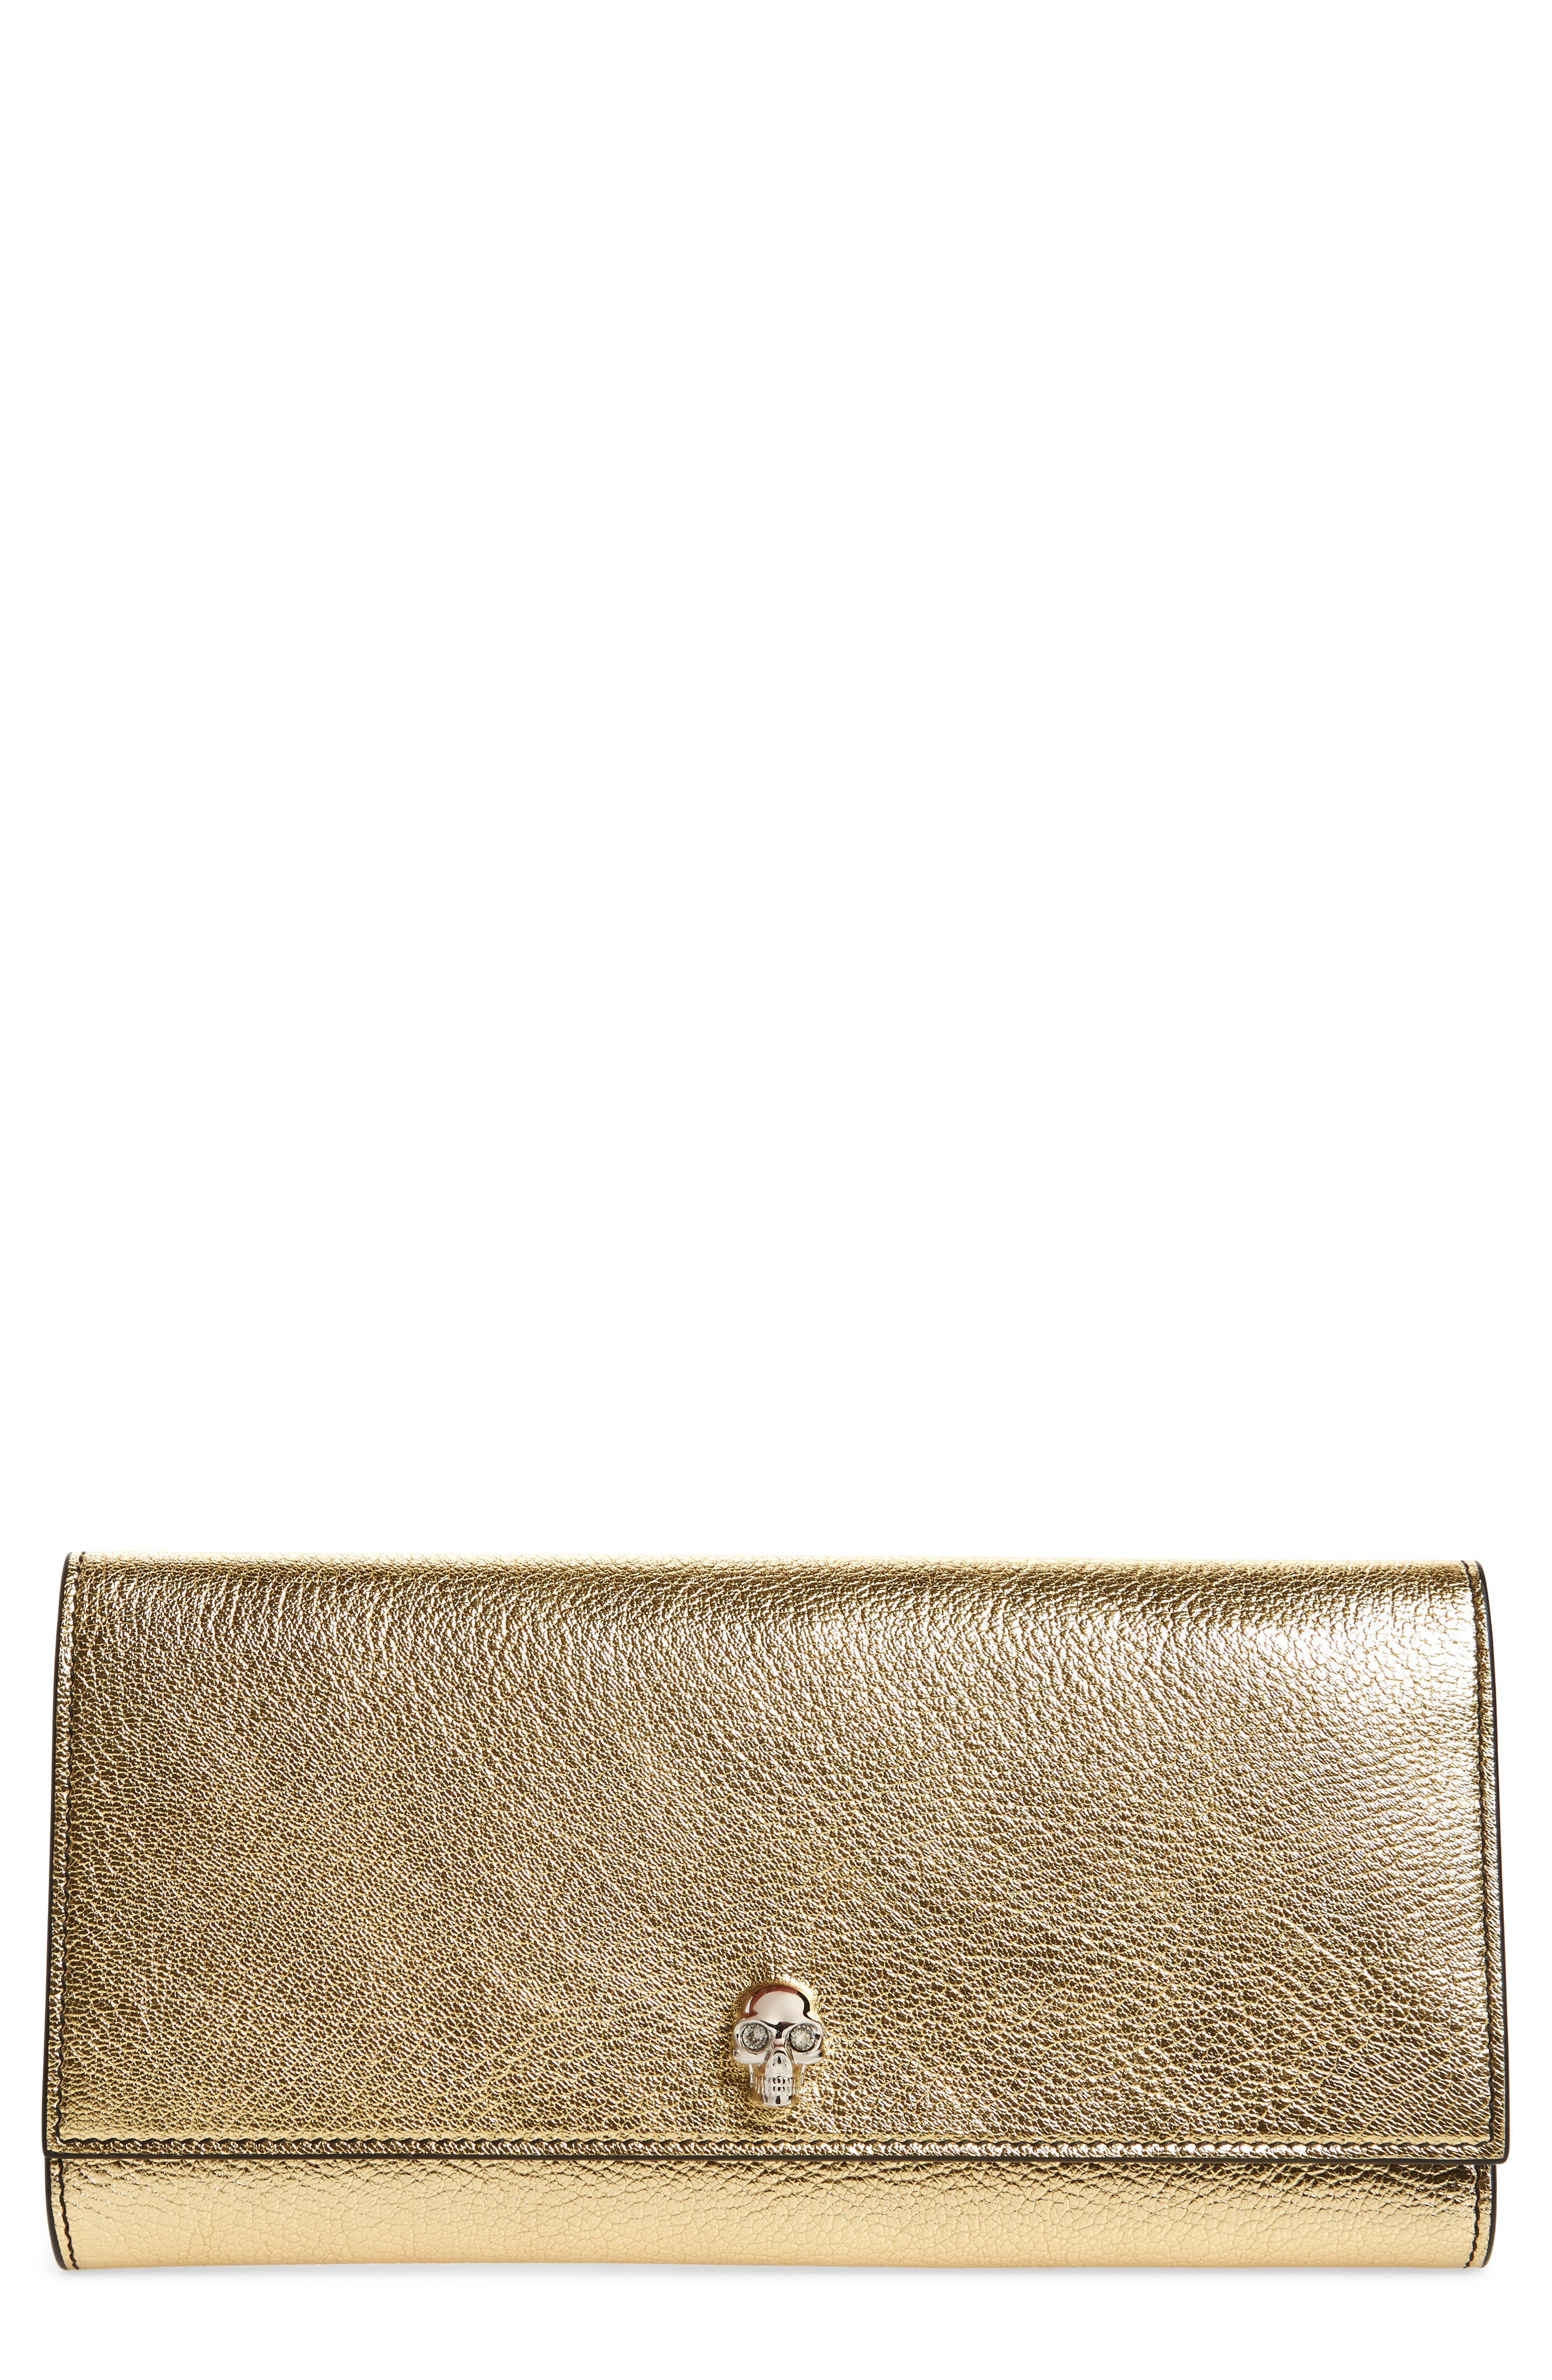 Leather Travel Wallet,                             Main thumbnail 1, color,                             710